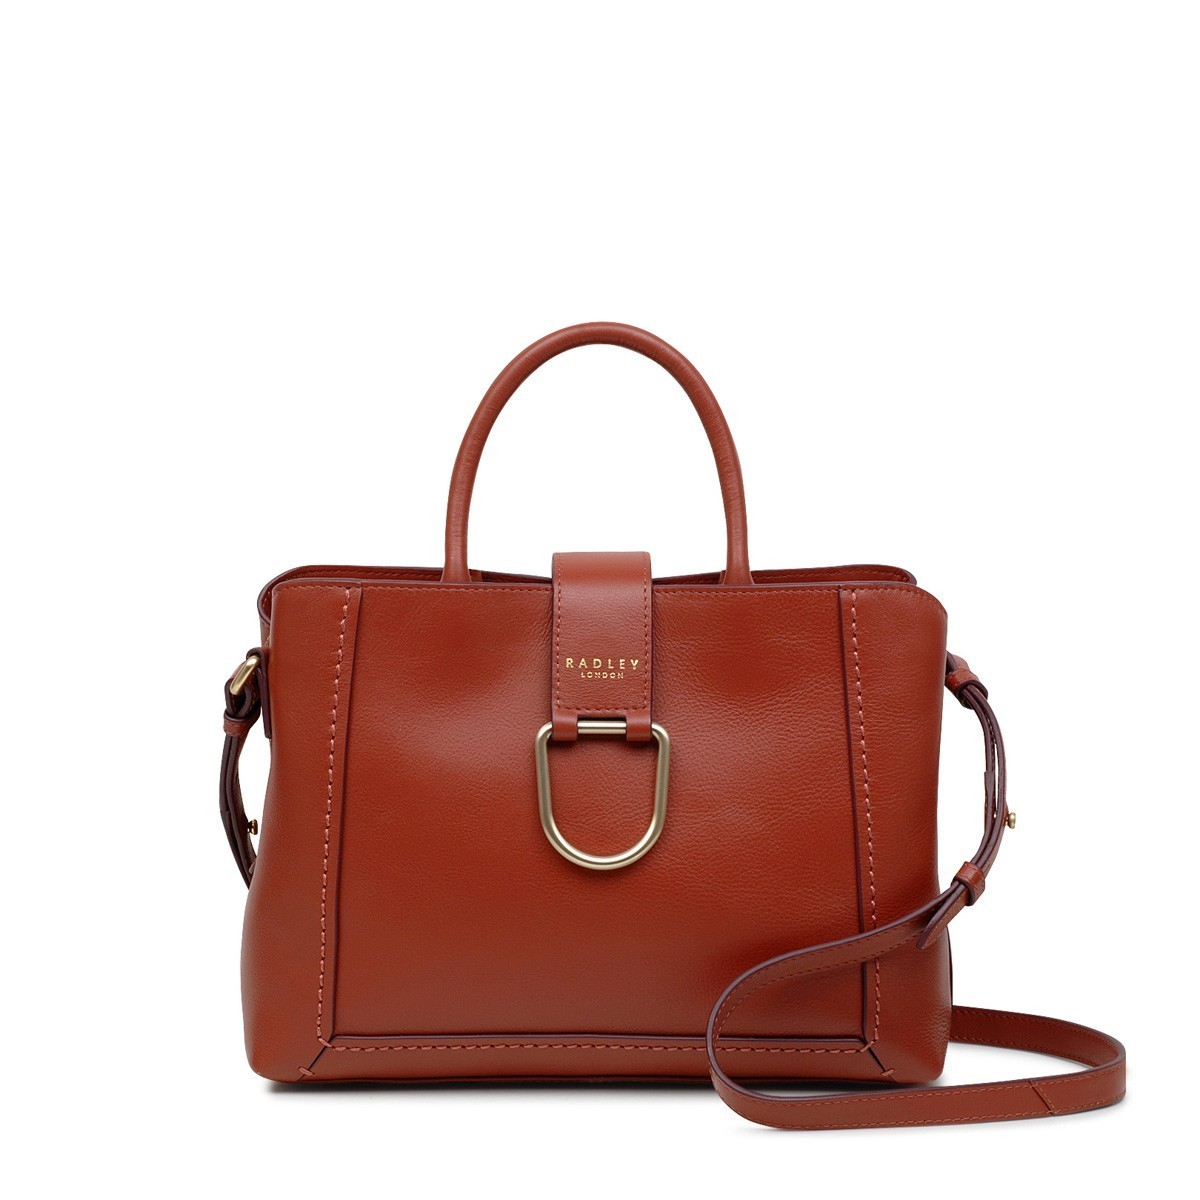 【ラドリー】RADLEY PRIMROSE HILL MEDIUM バッグ Paprika